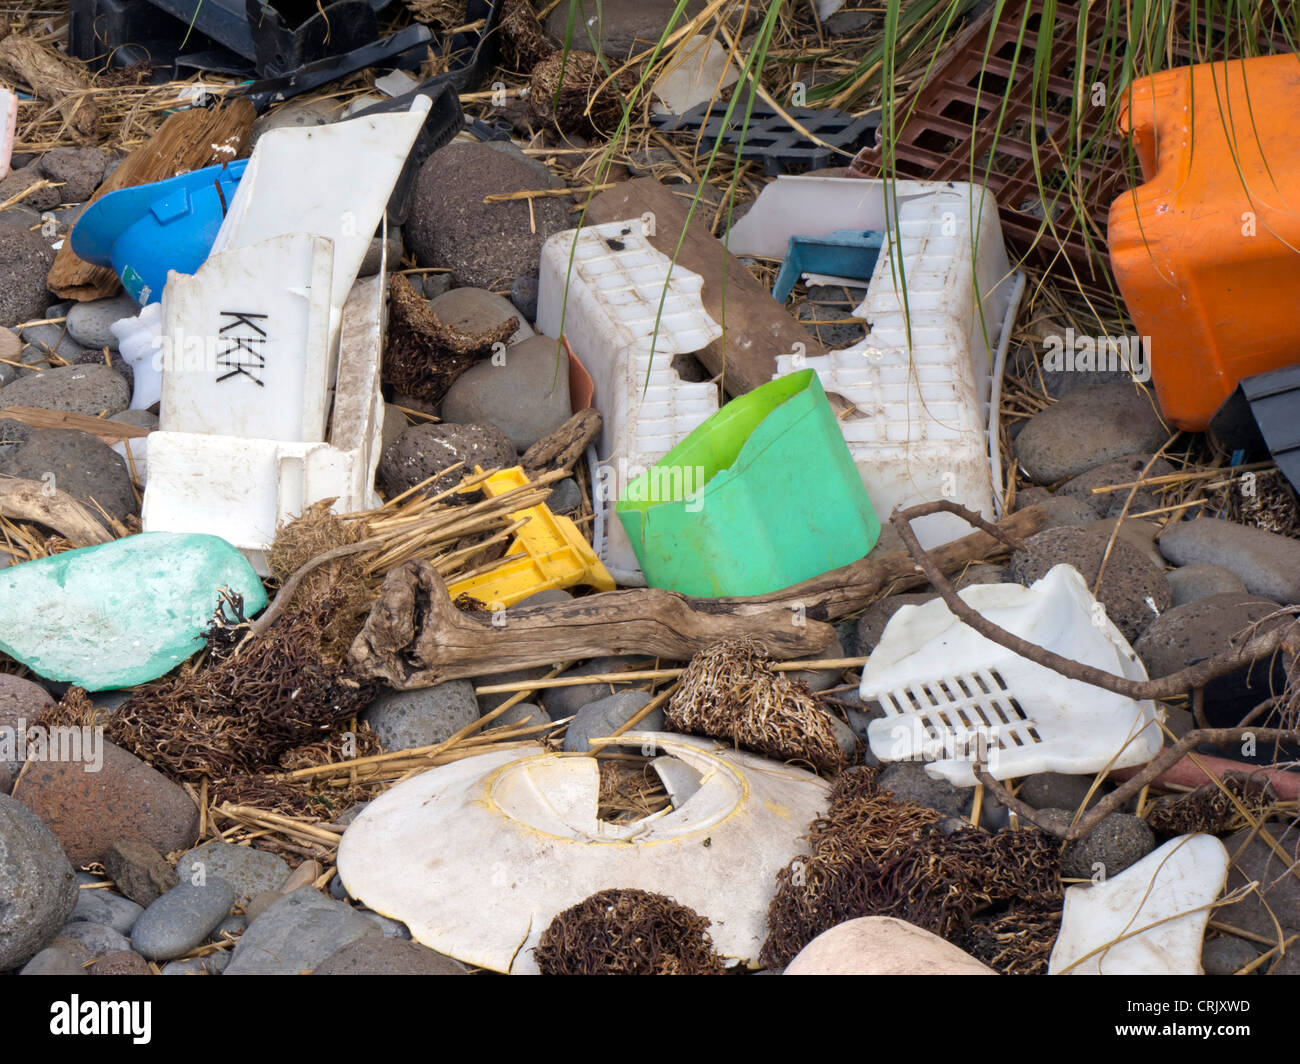 Plastic debris washed up on Inaccessible Island,South Atlantic Ocean - Stock Image